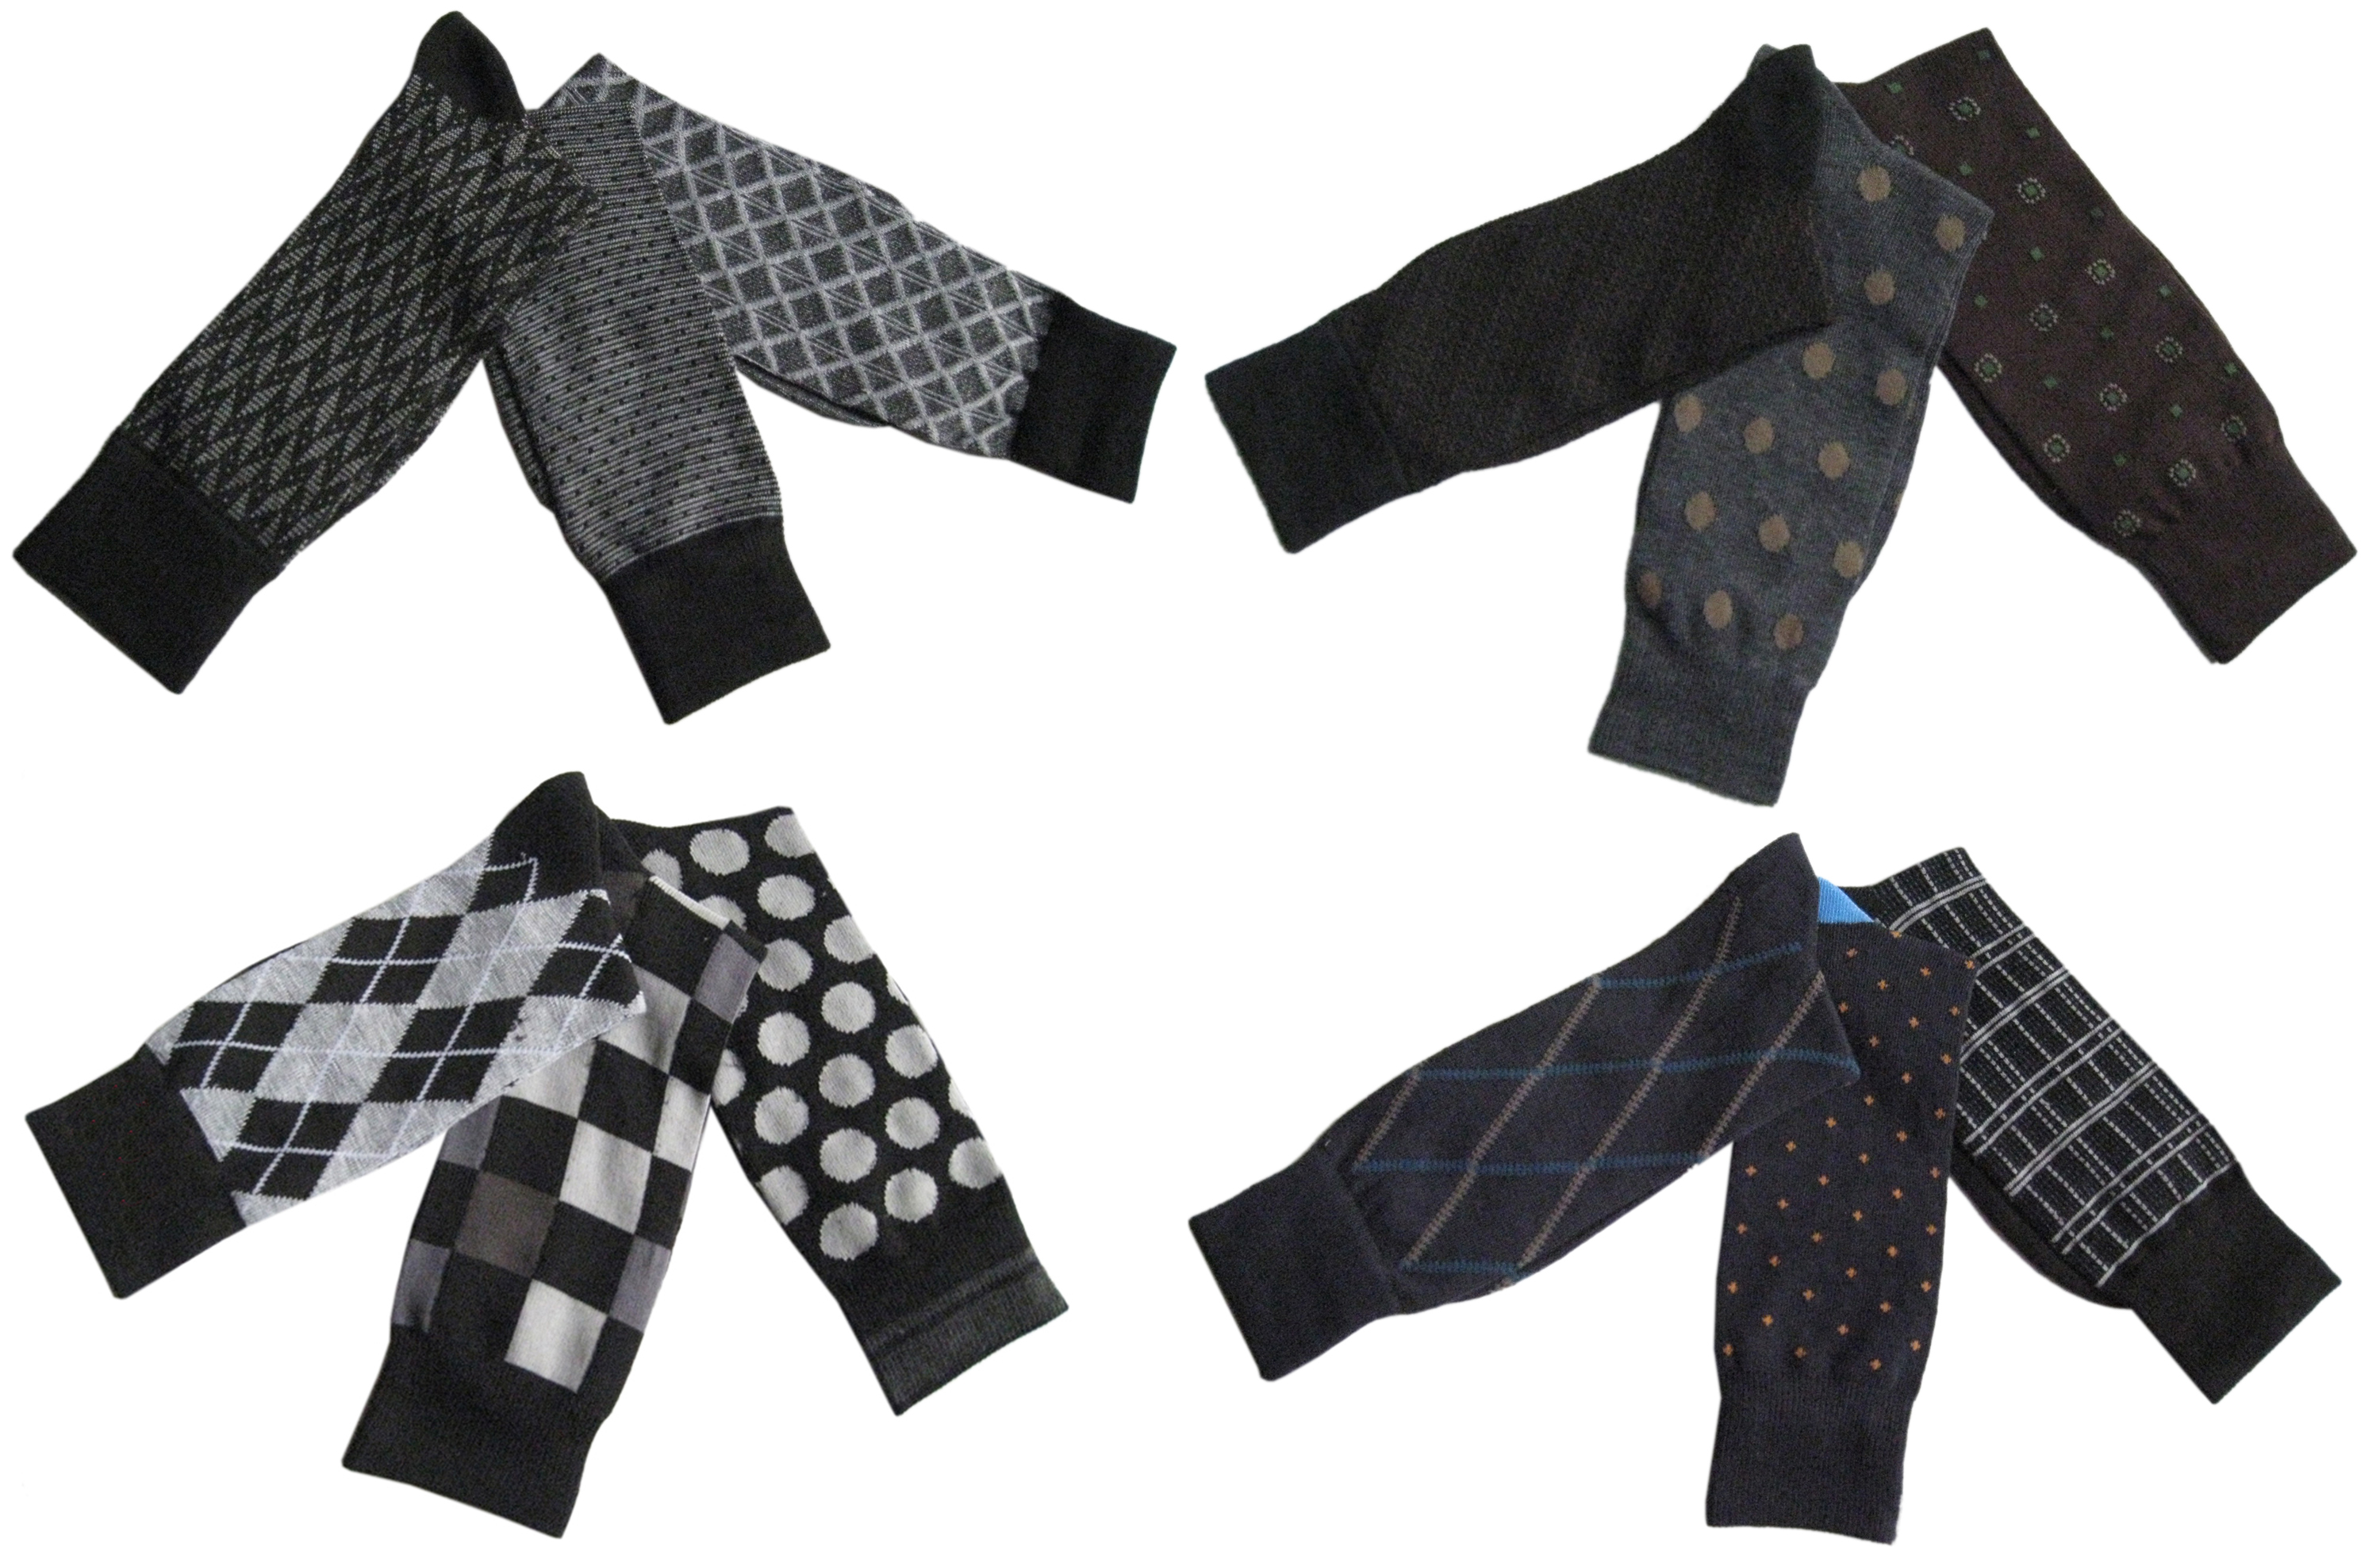 Men's Designer DRESS Socks - Assorted Prints - Size 10-13 - 3-Pair Packs